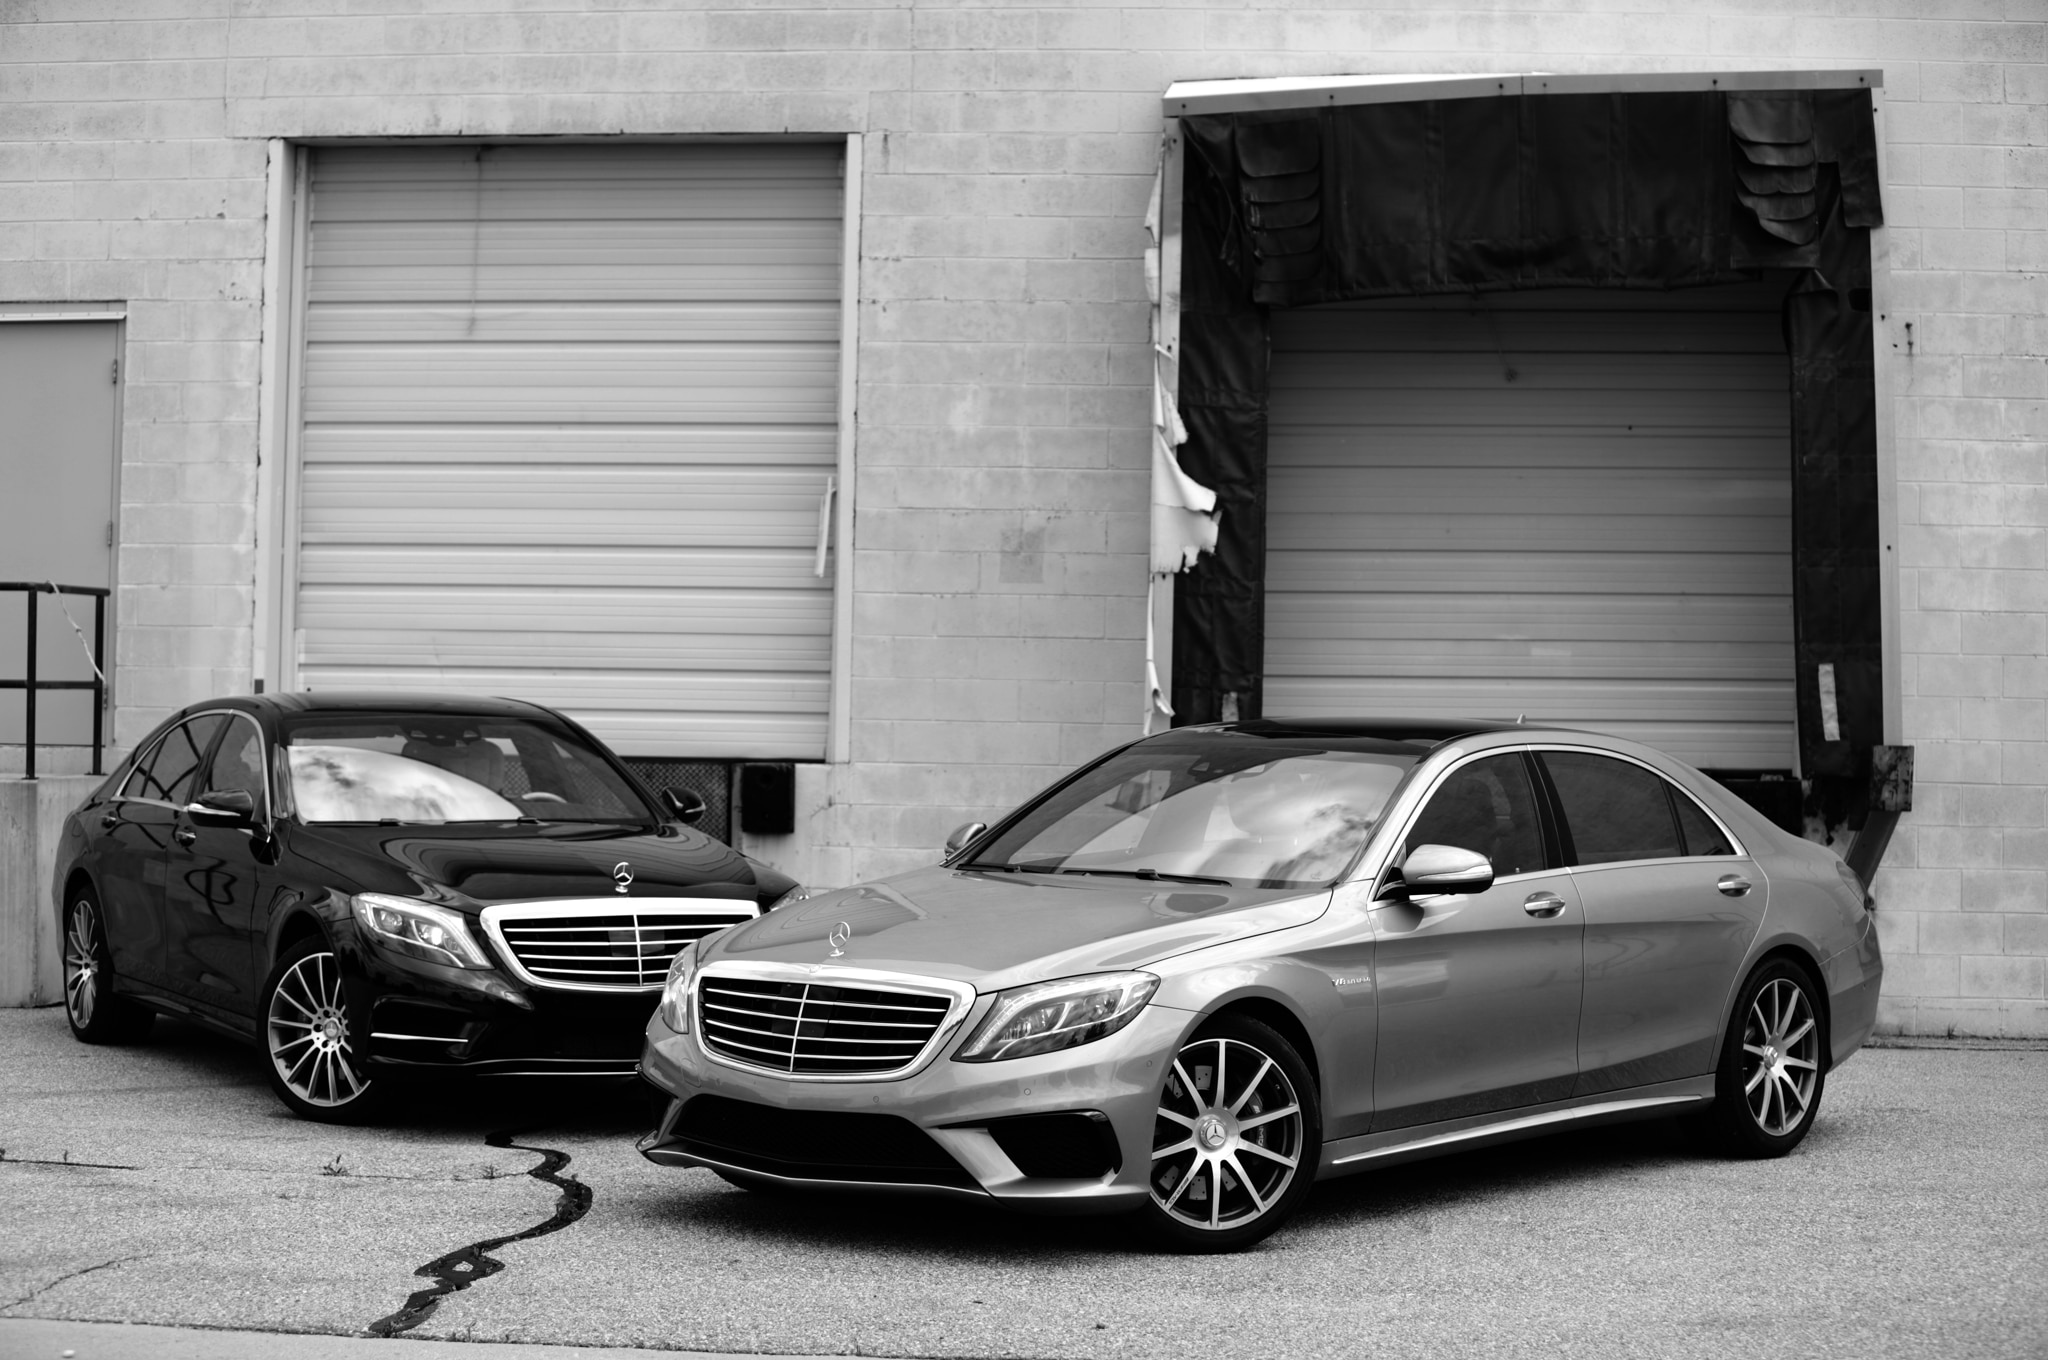 2014 Mercedes Benz S550 And S63 Amg Around The Block 07 Fuse Box Show More